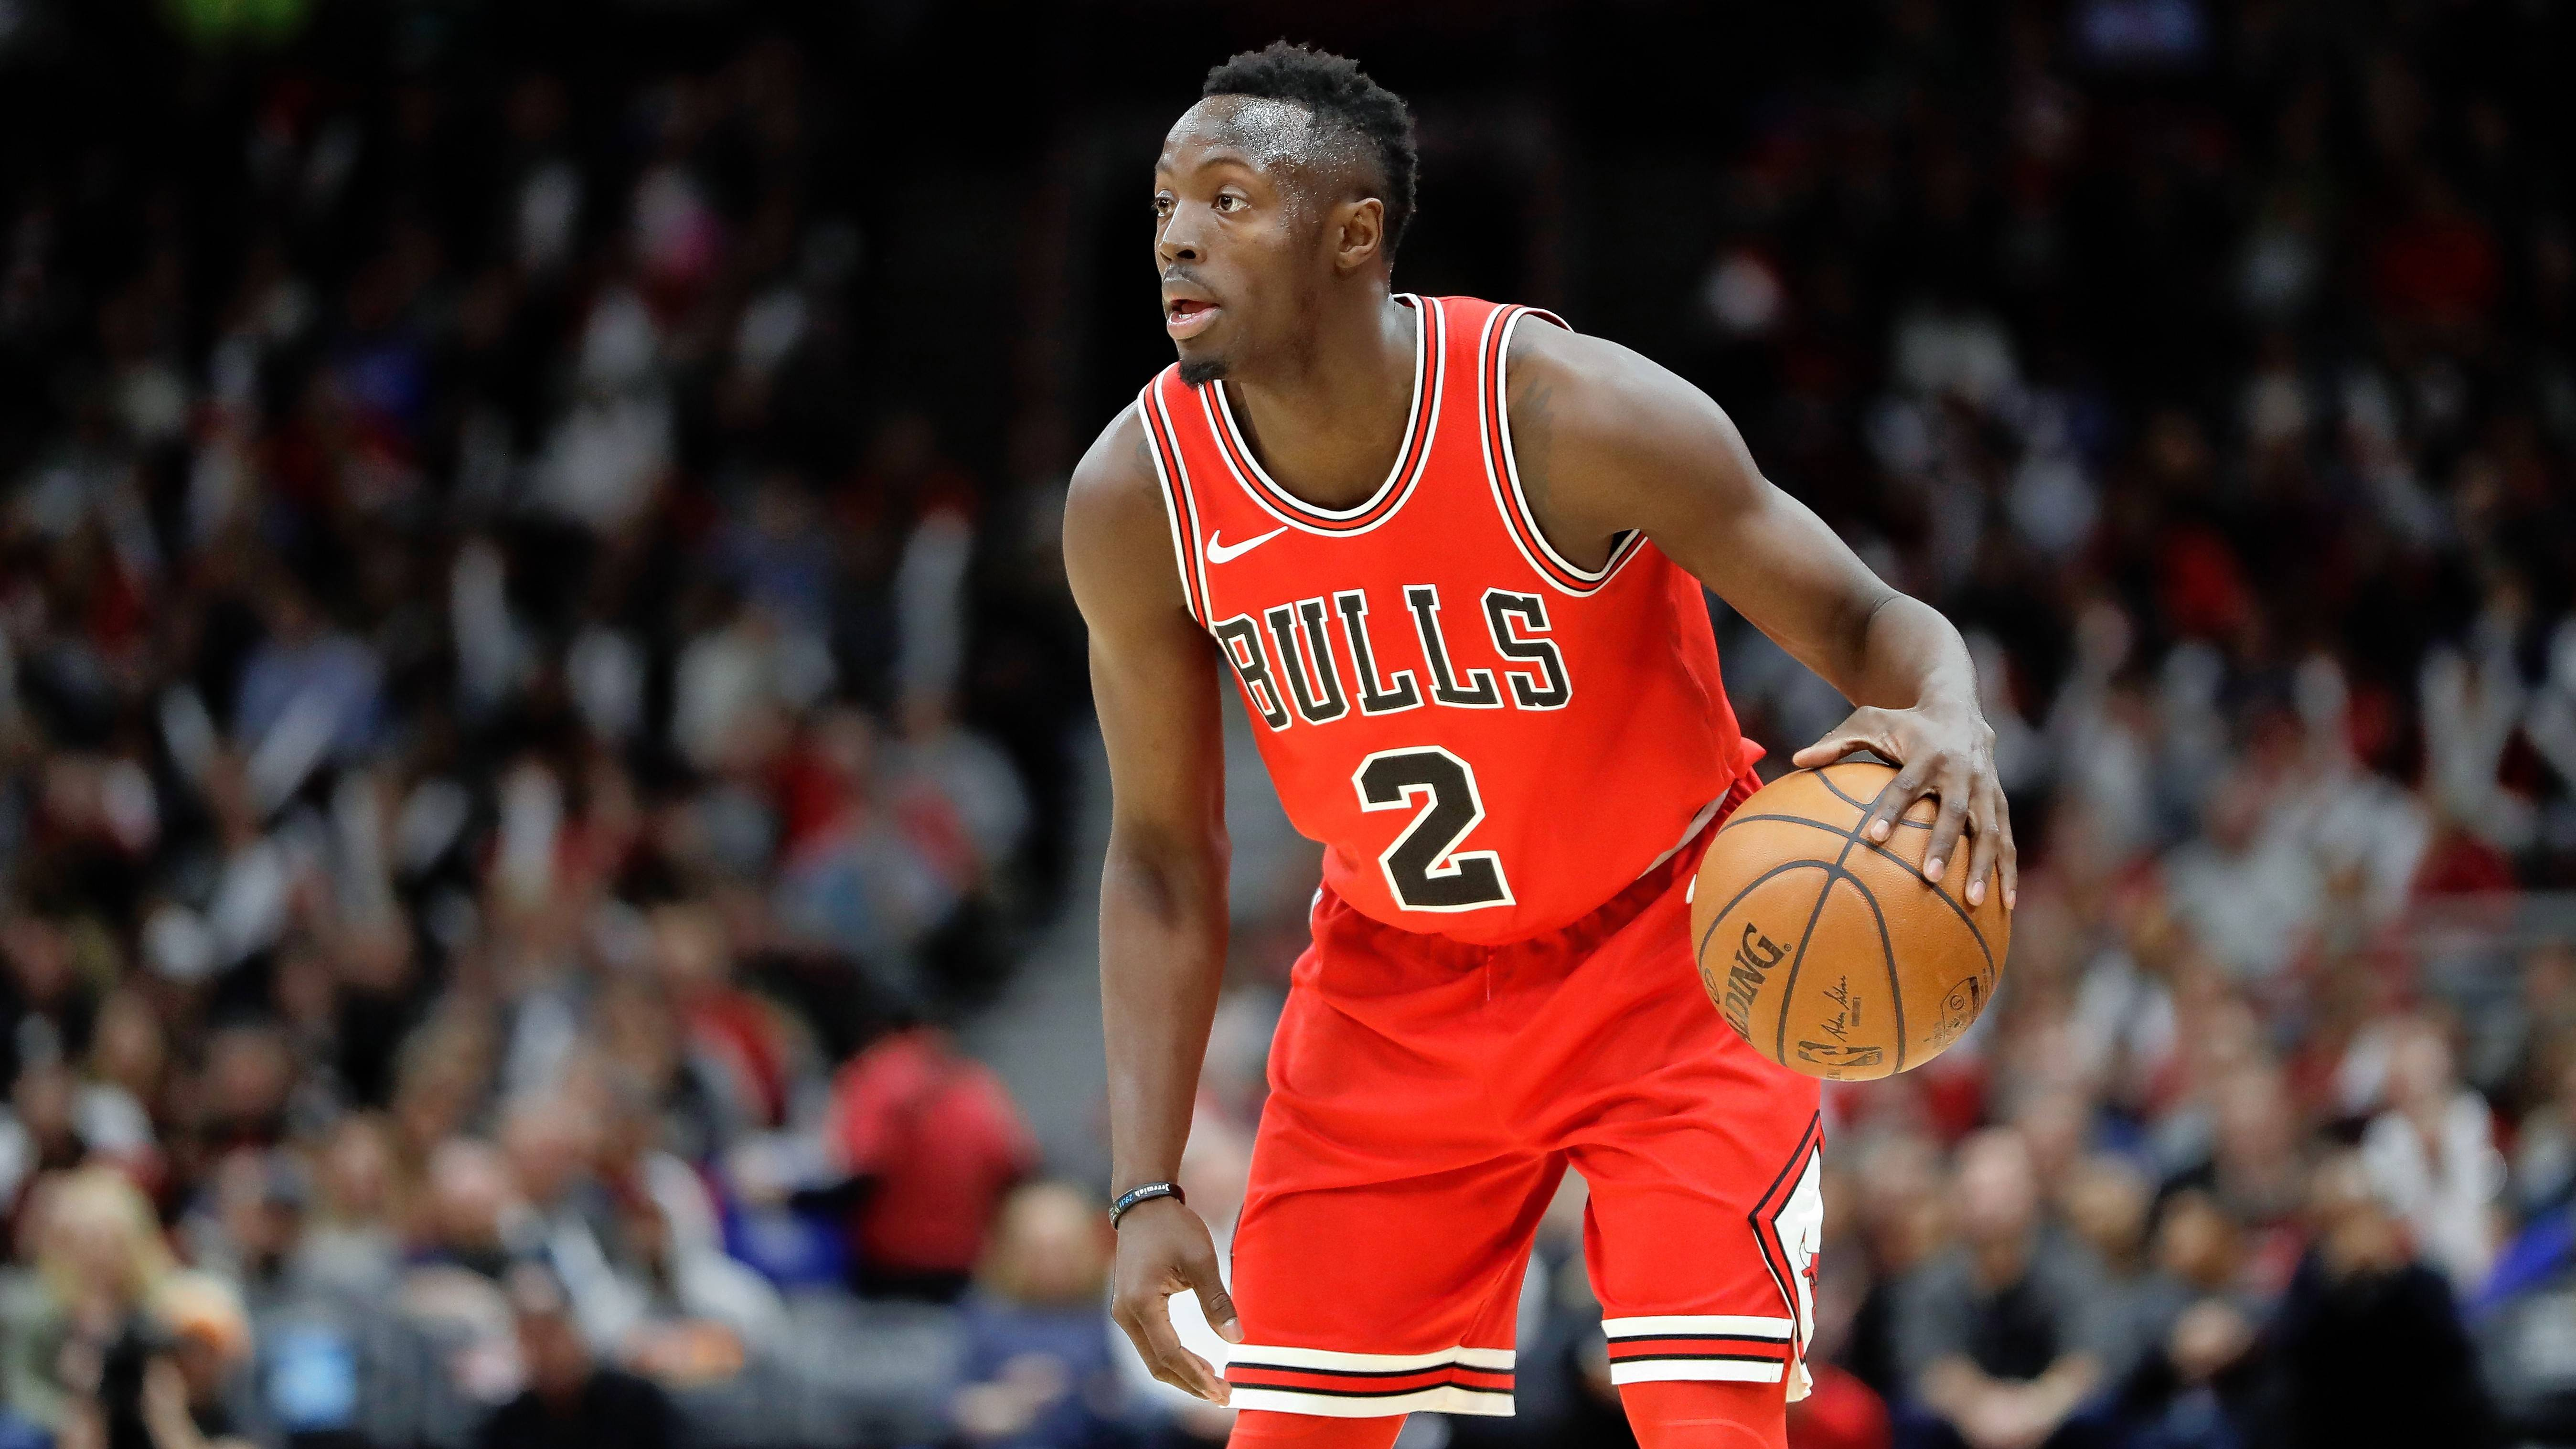 Trimming the roster figured to be a task on the Chicago Bulls' to-do list this summer. The process began Saturday, with guard Jerian Grant on his way to Orlando as part of a three-team trade, according to multiple reports.